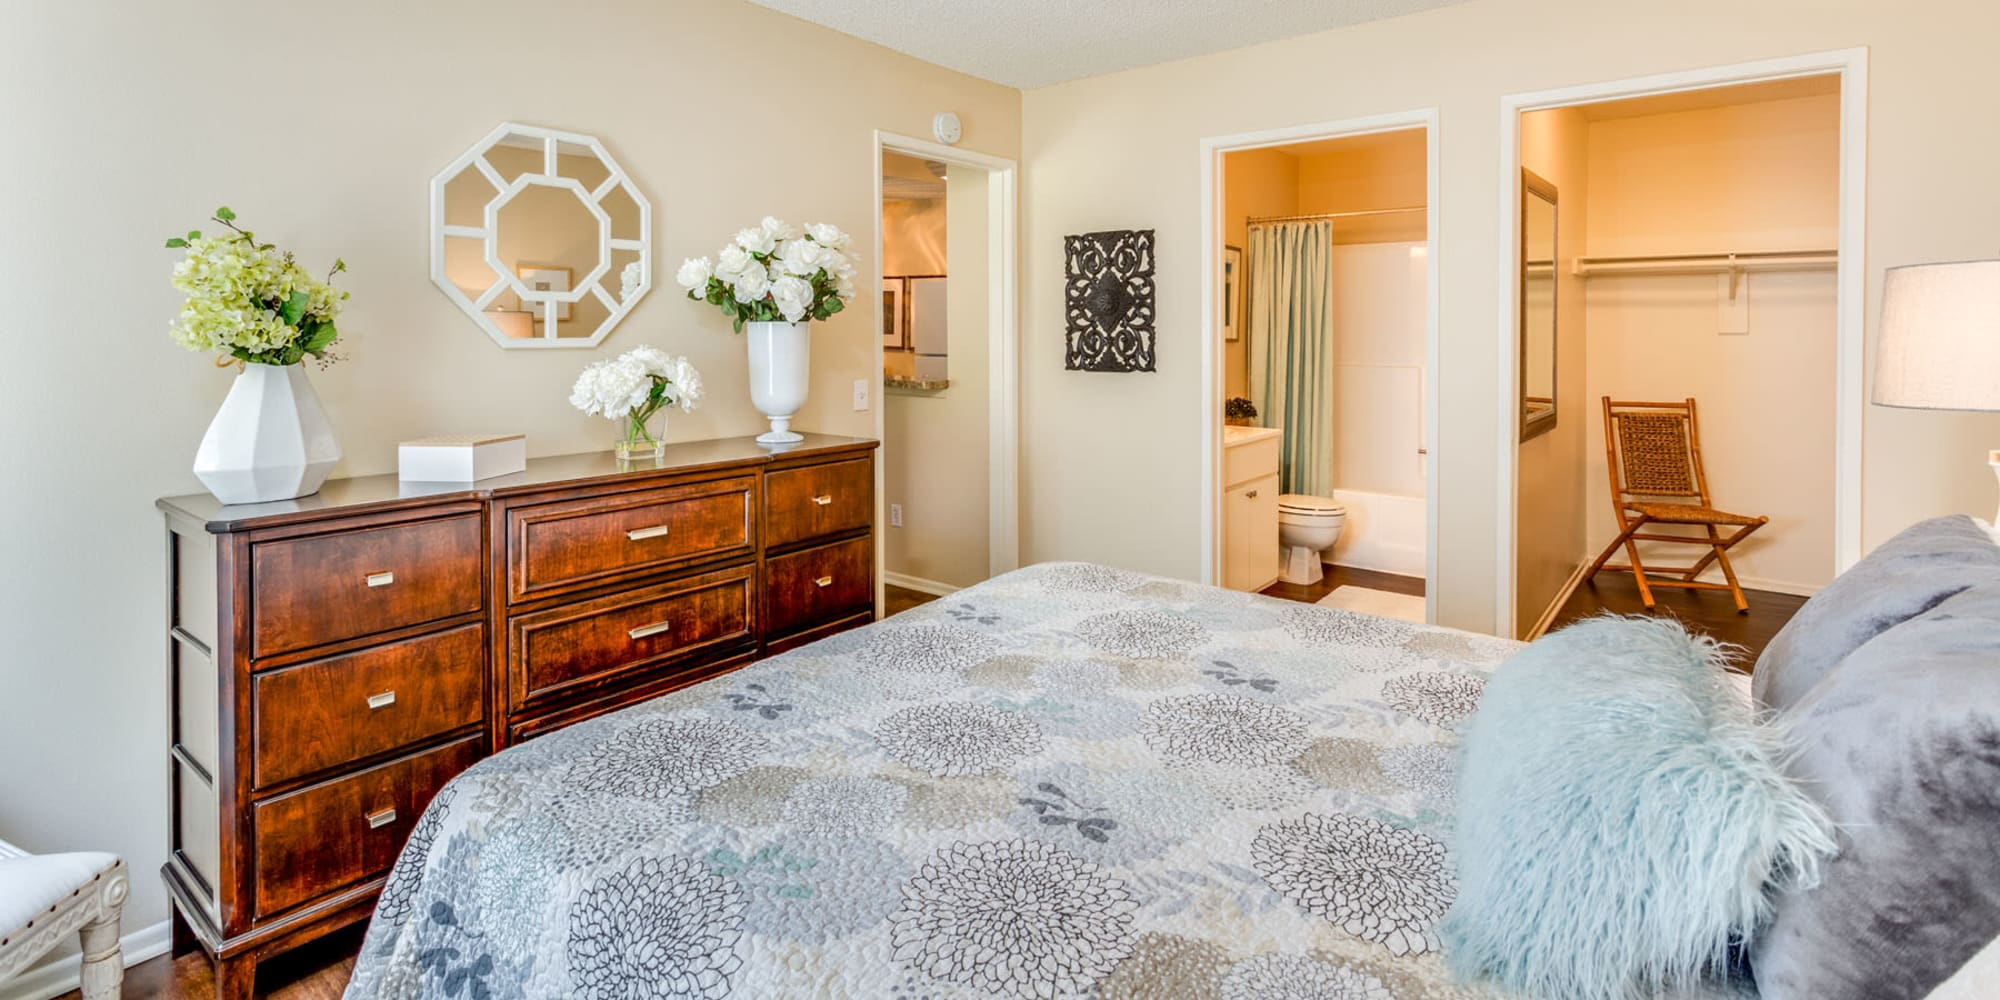 Classically furnished model home's primary bedroom with an en suite bathroom and walk-in closet at Mountain Vista in Victorville, California